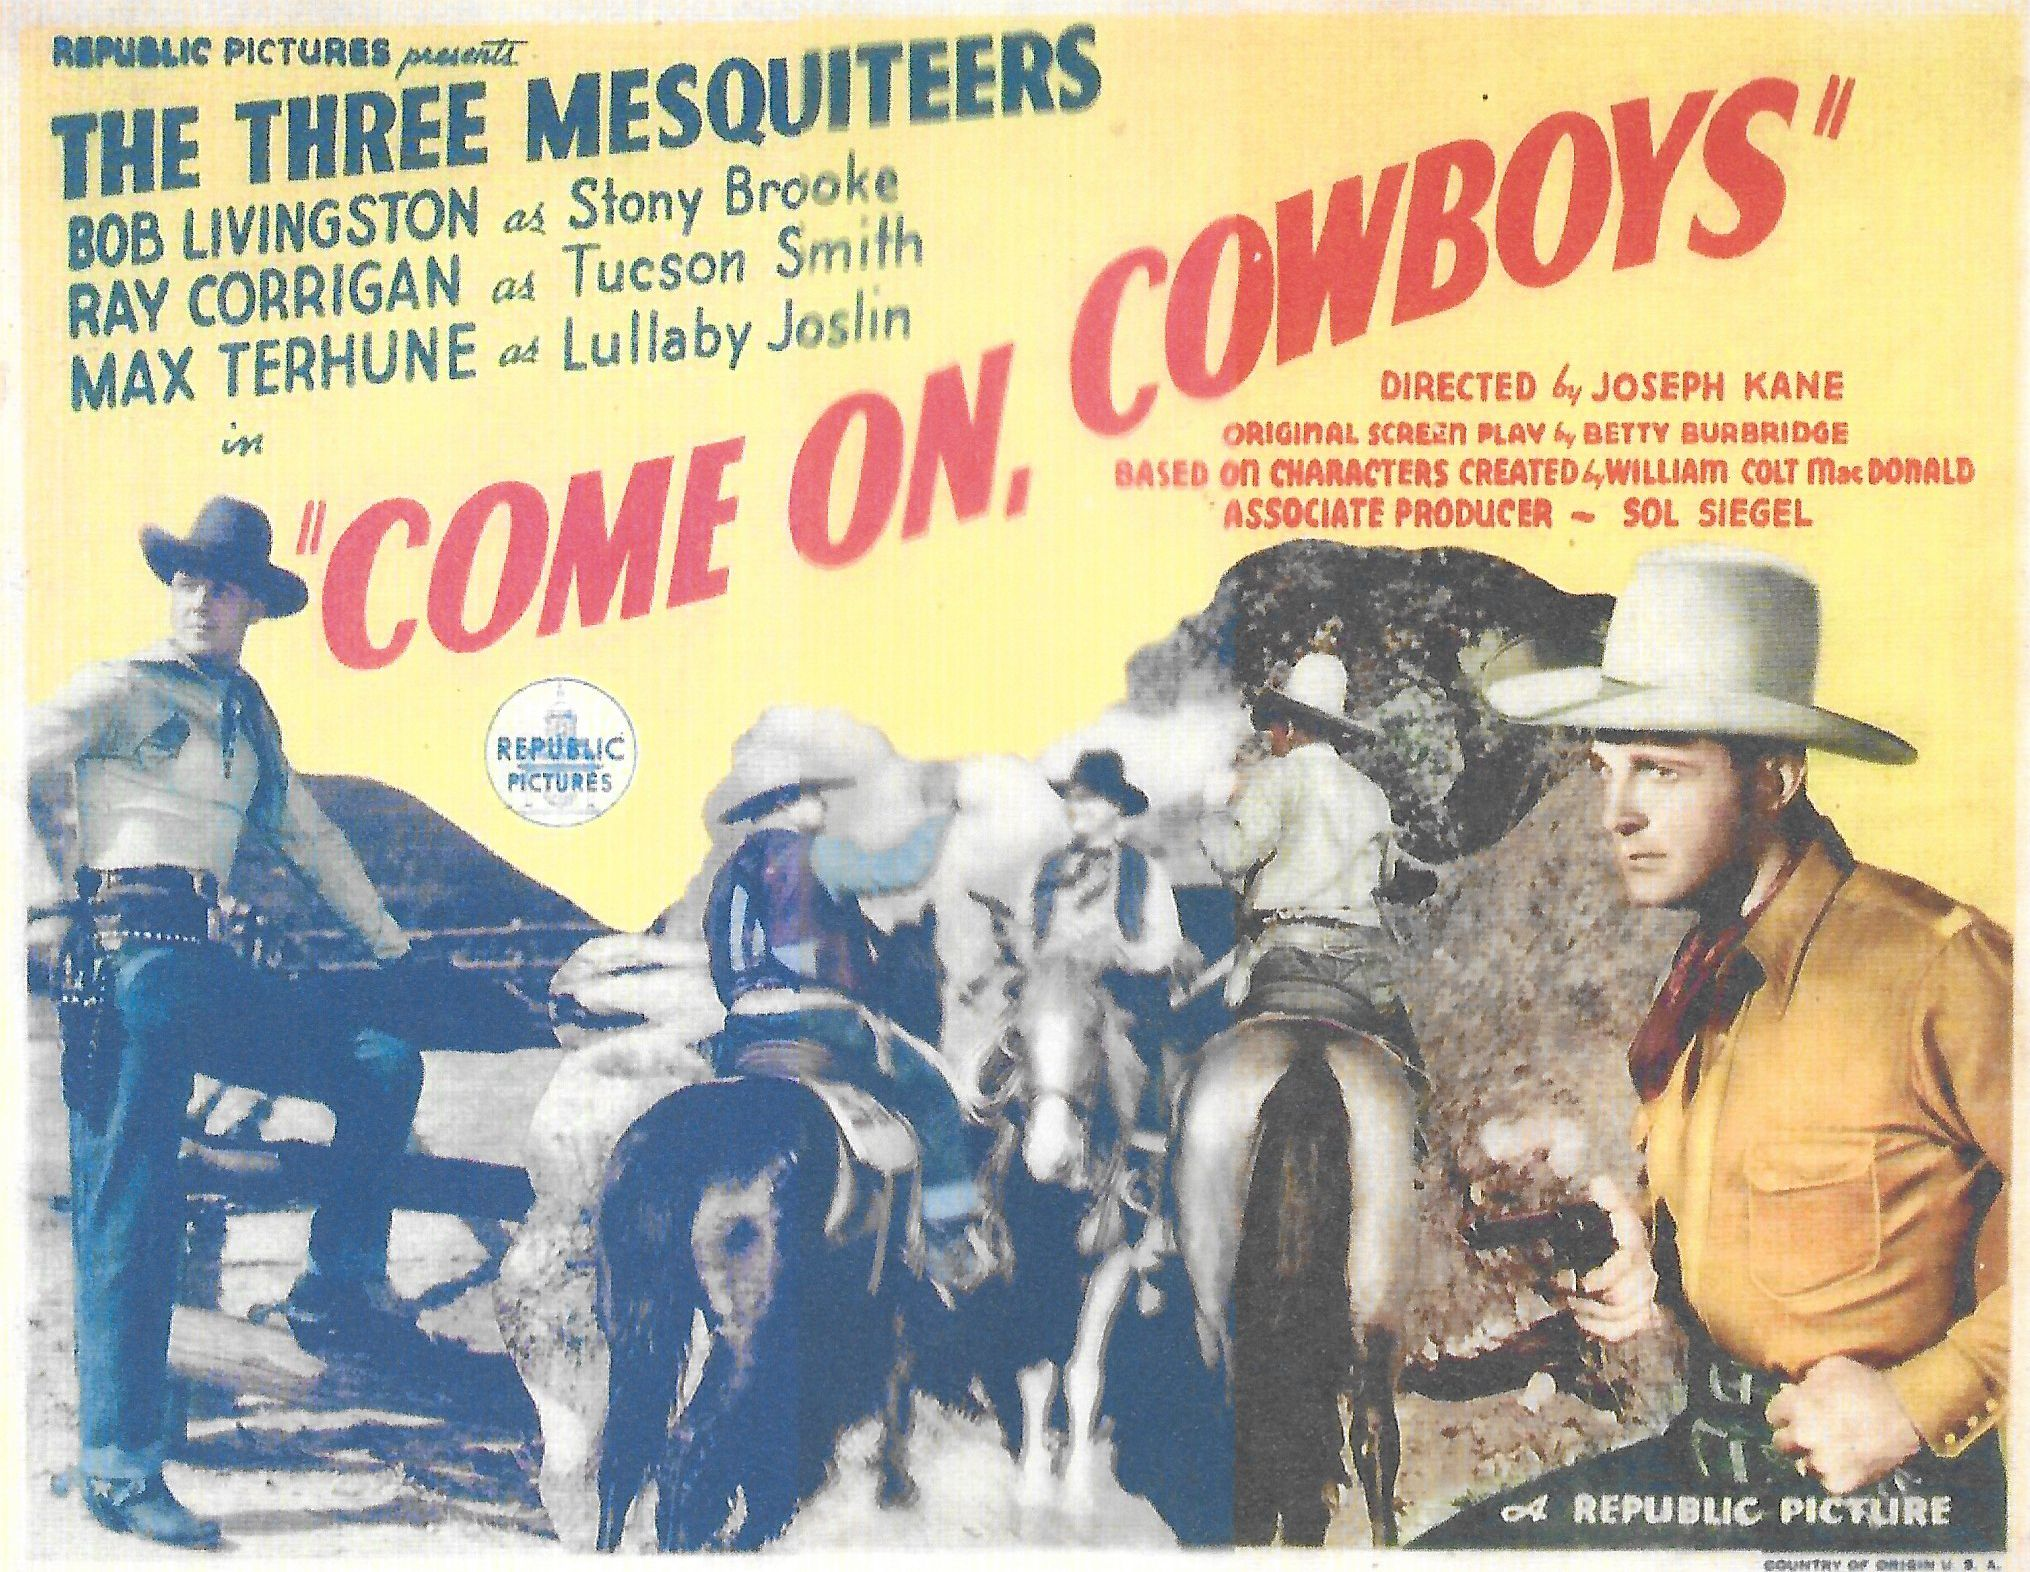 Ray Corrigan, Robert Livingston, and Max Terhune in Come on, Cowboys (1937)